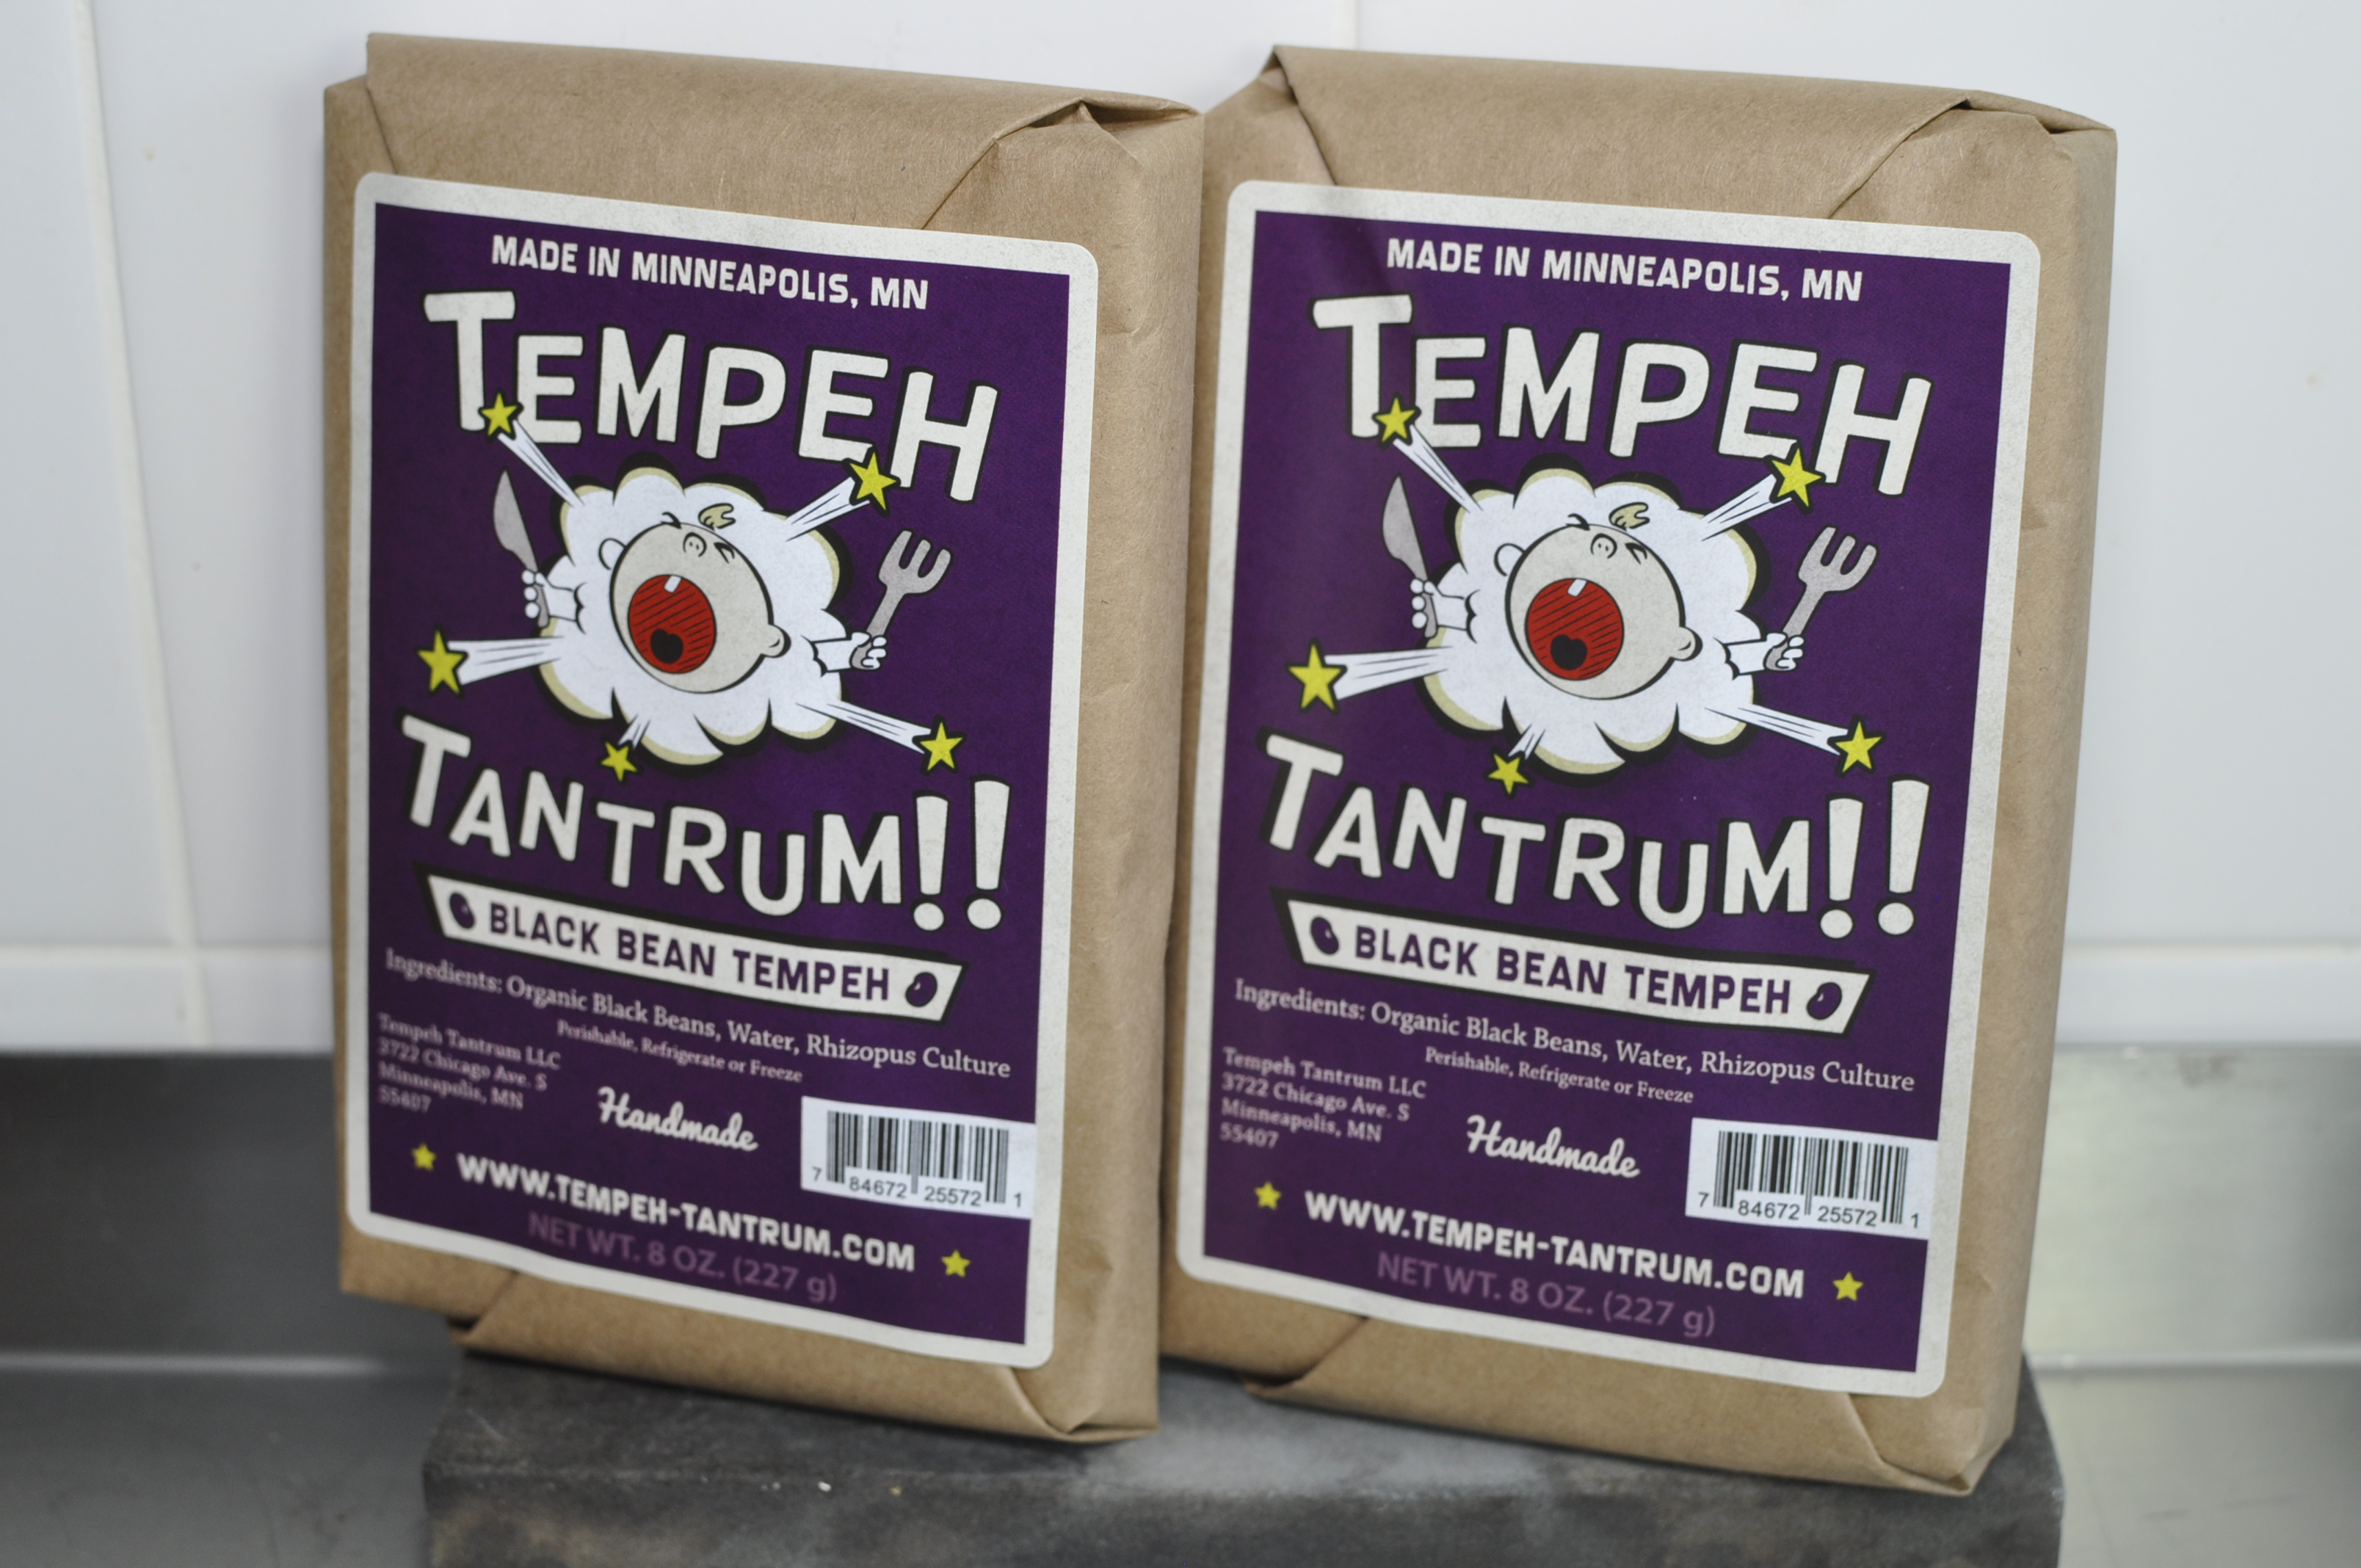 photo of packaged tempeh tantrum black bean tempeh